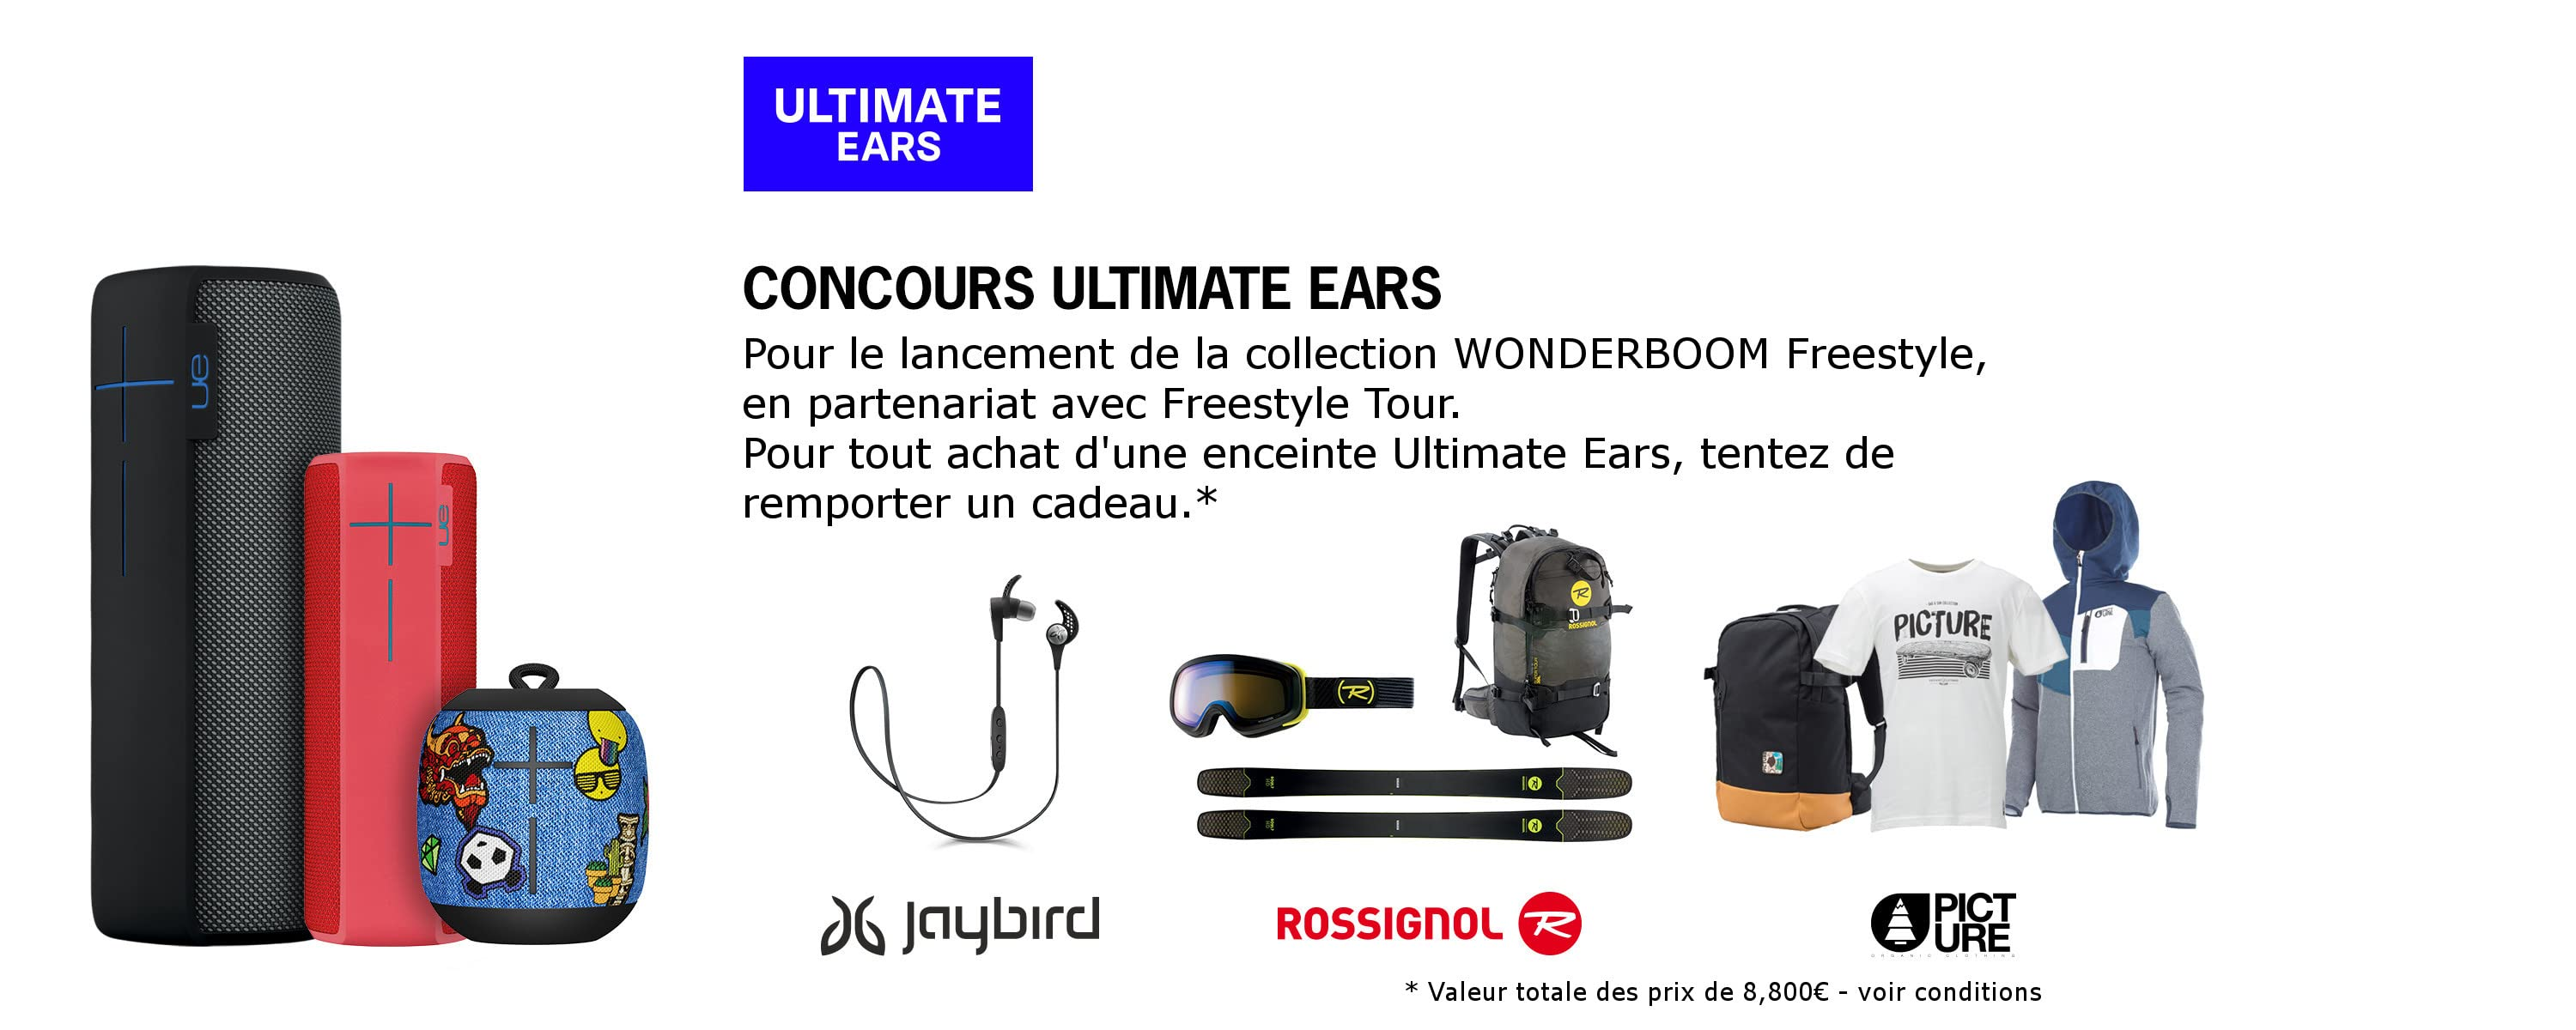 Concours Ultime Ears